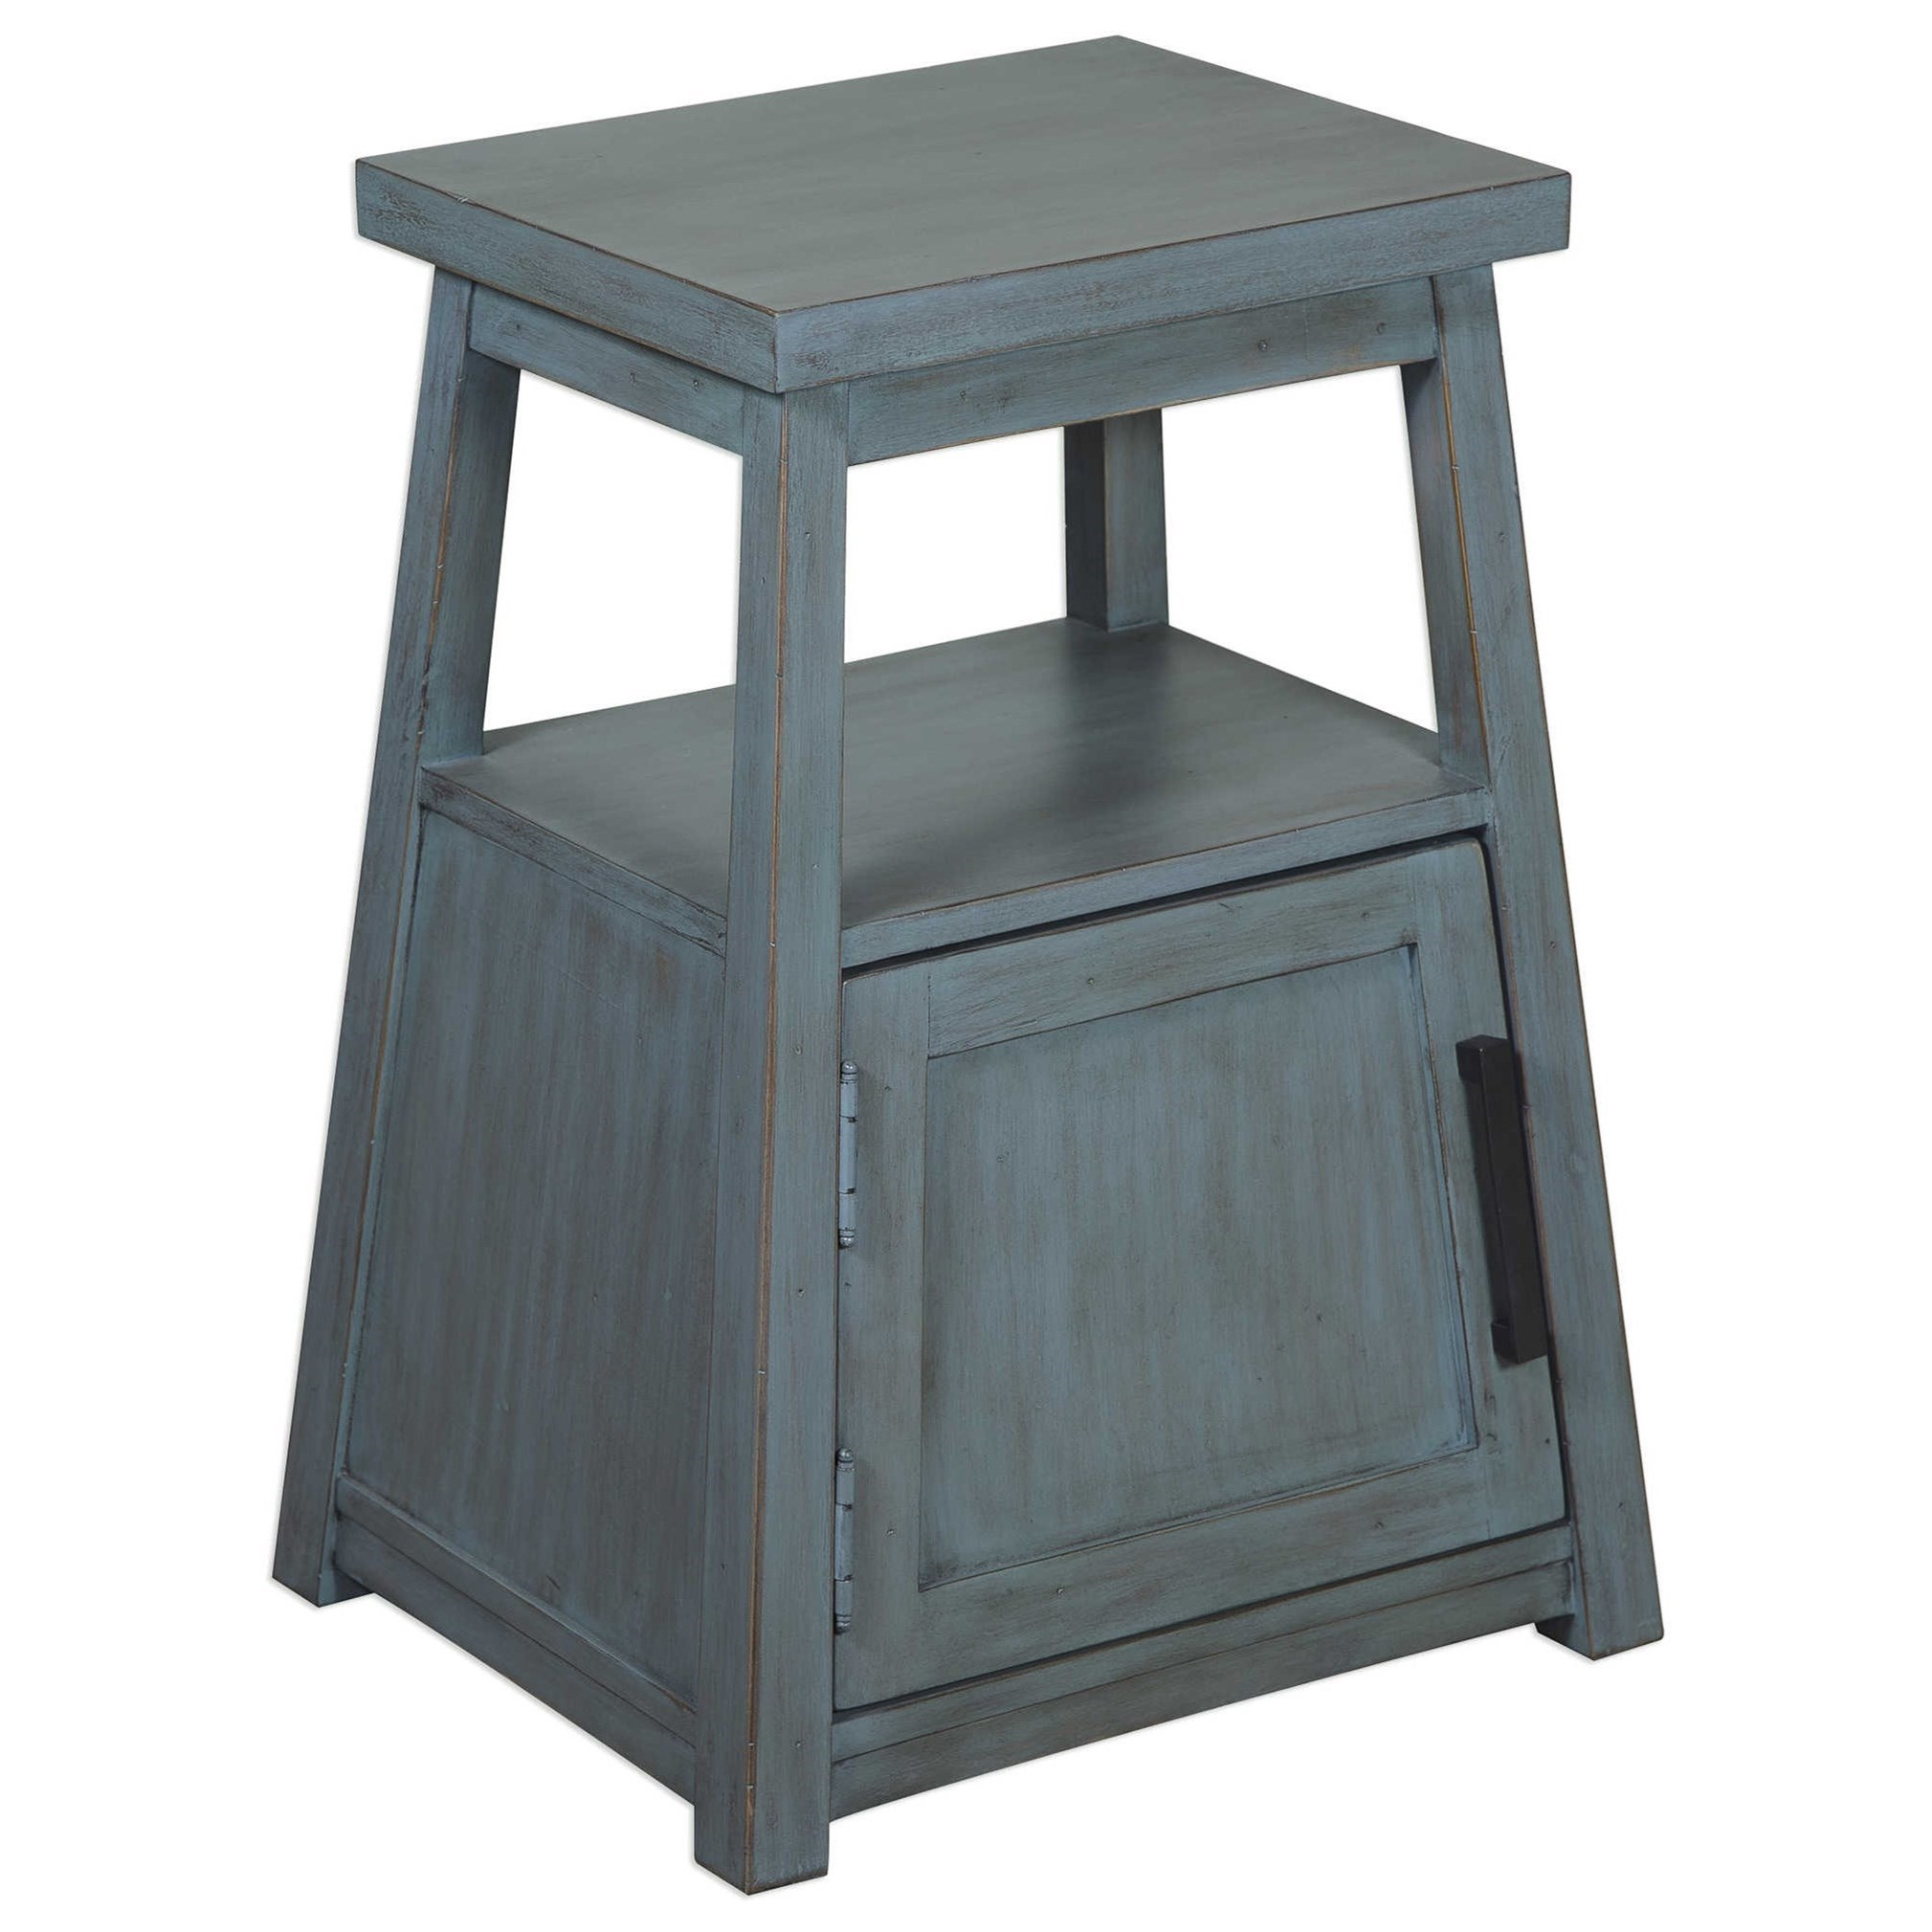 Uttermost Accent Furniture Cora Blue Wash Accent Table - Item Number: 25960